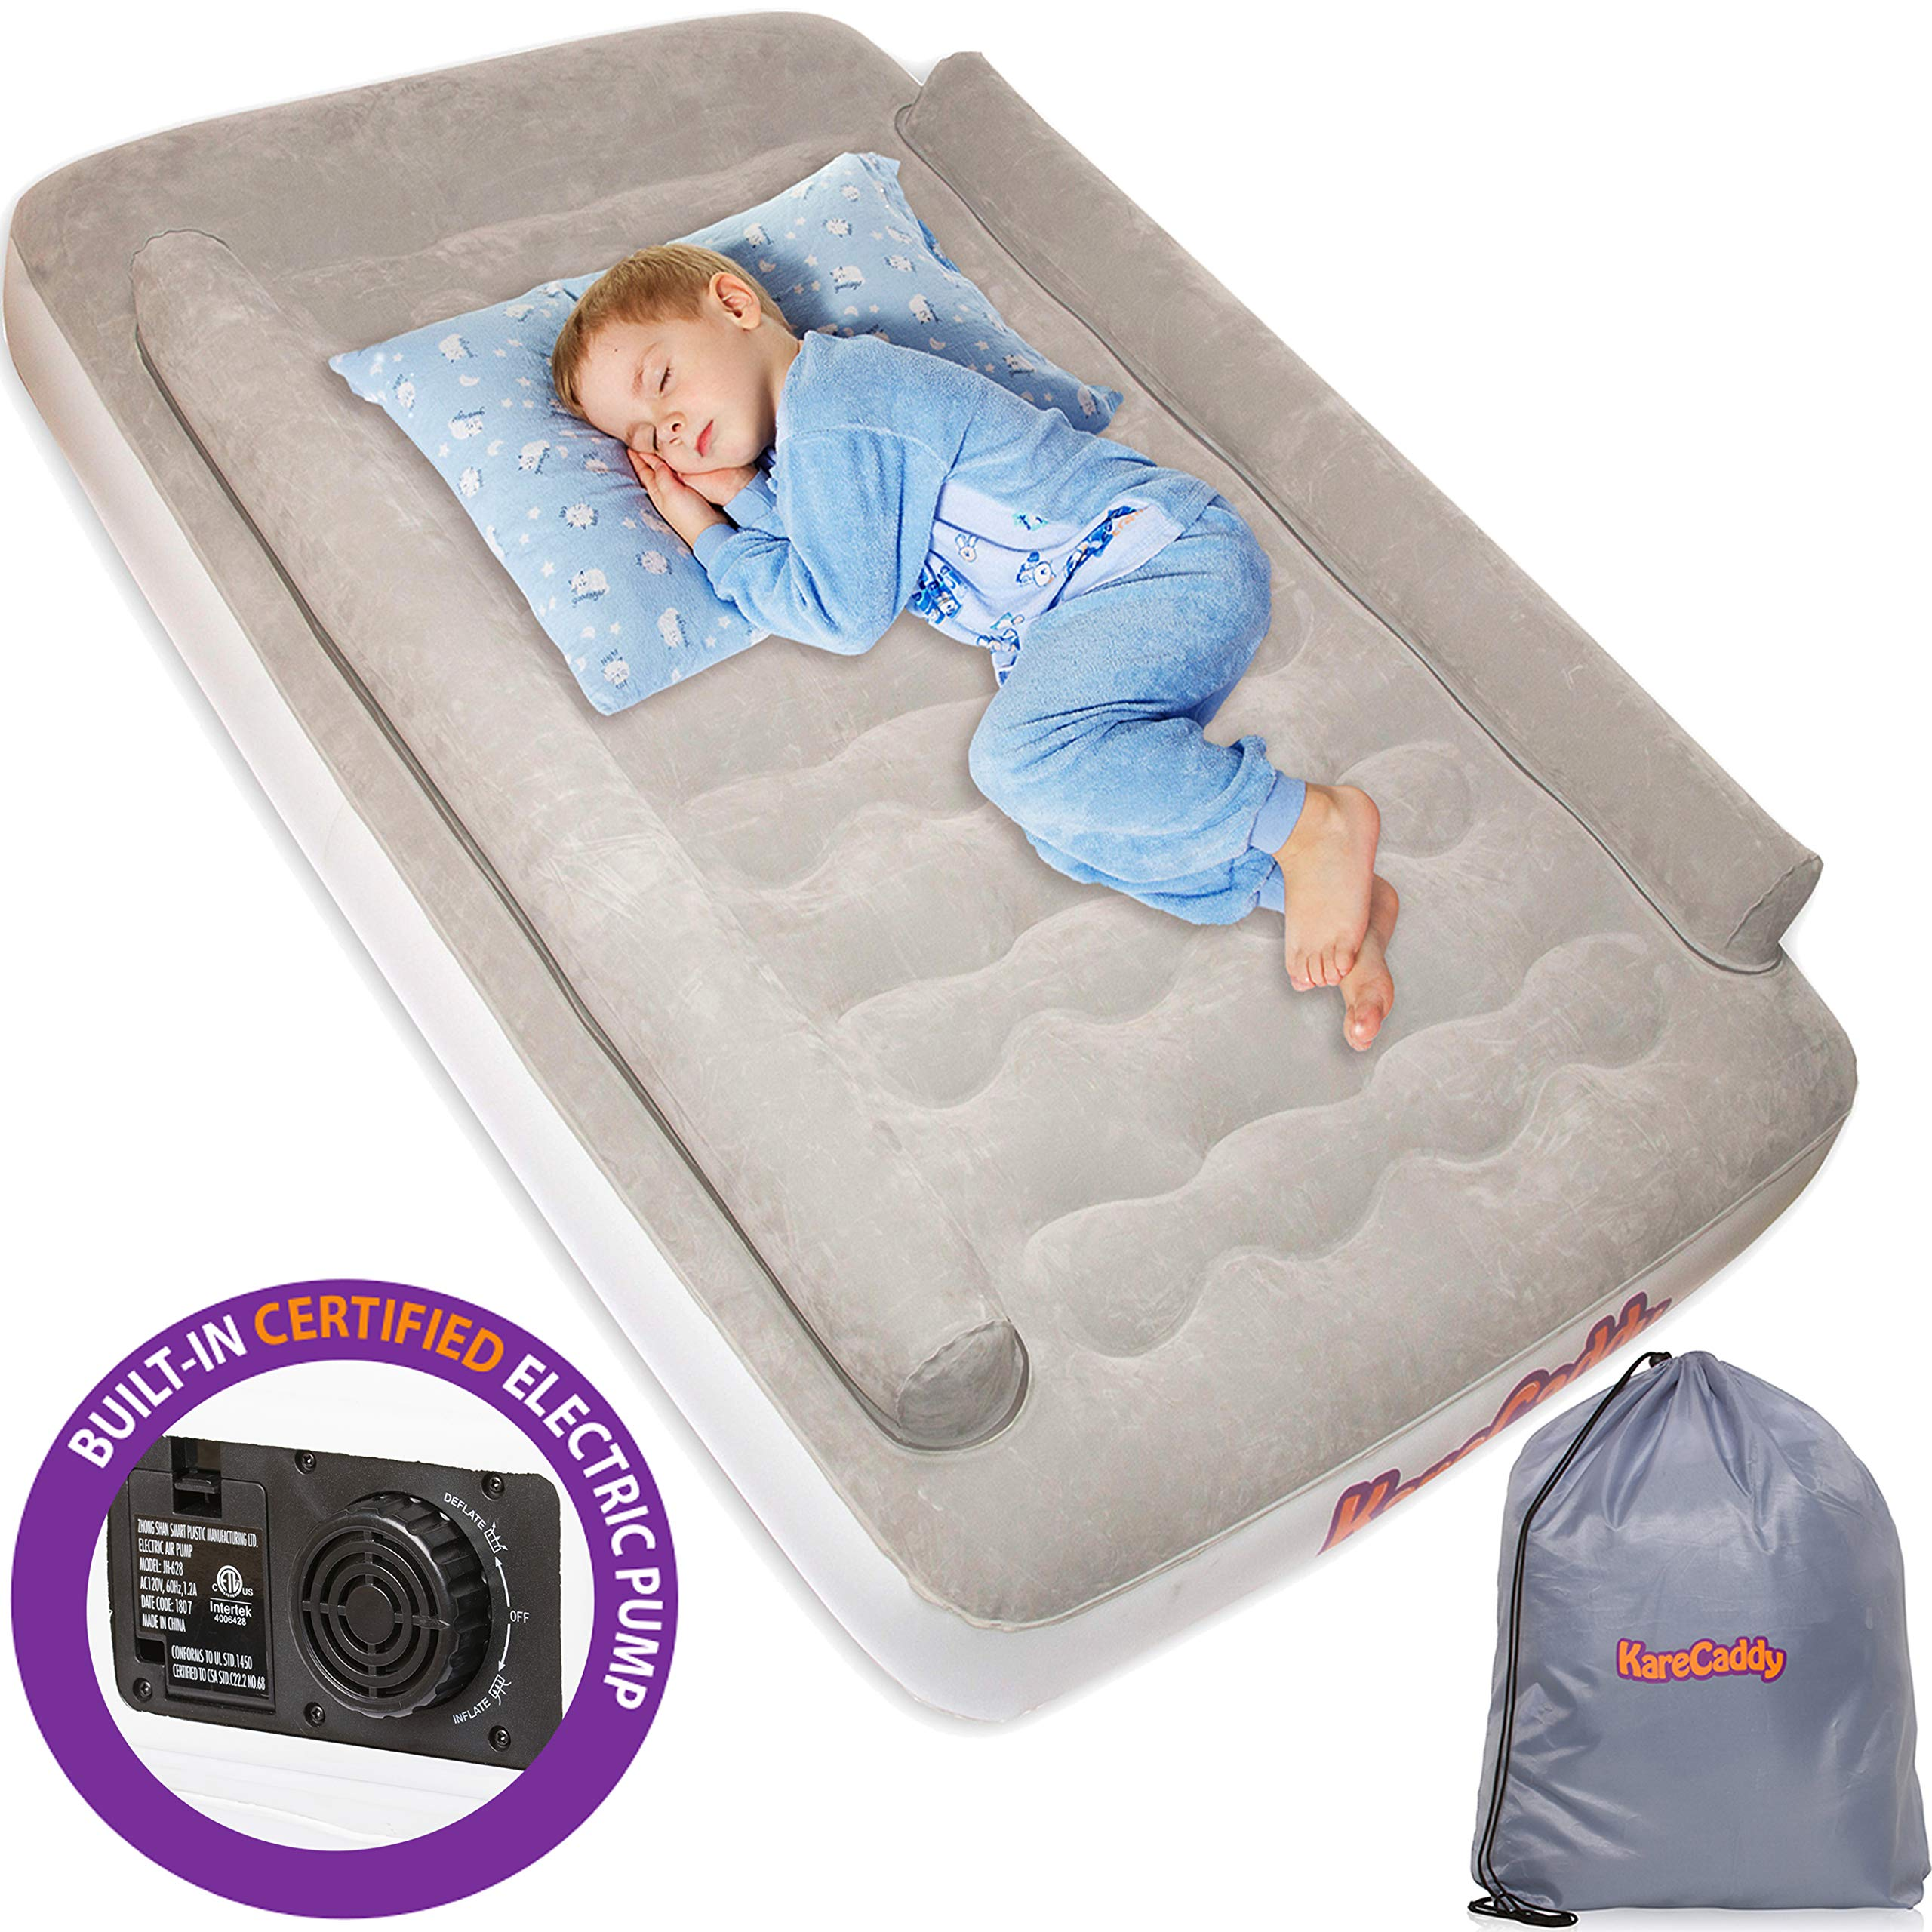 KareCaddy Toddler Air Mattress - with Built-in Electric Pump, Kids Air Mattress with Sides Rails, Inflatable Toddler Travel Bed with Bumpers, Camping Air Bed, Portable Kids Air Beds